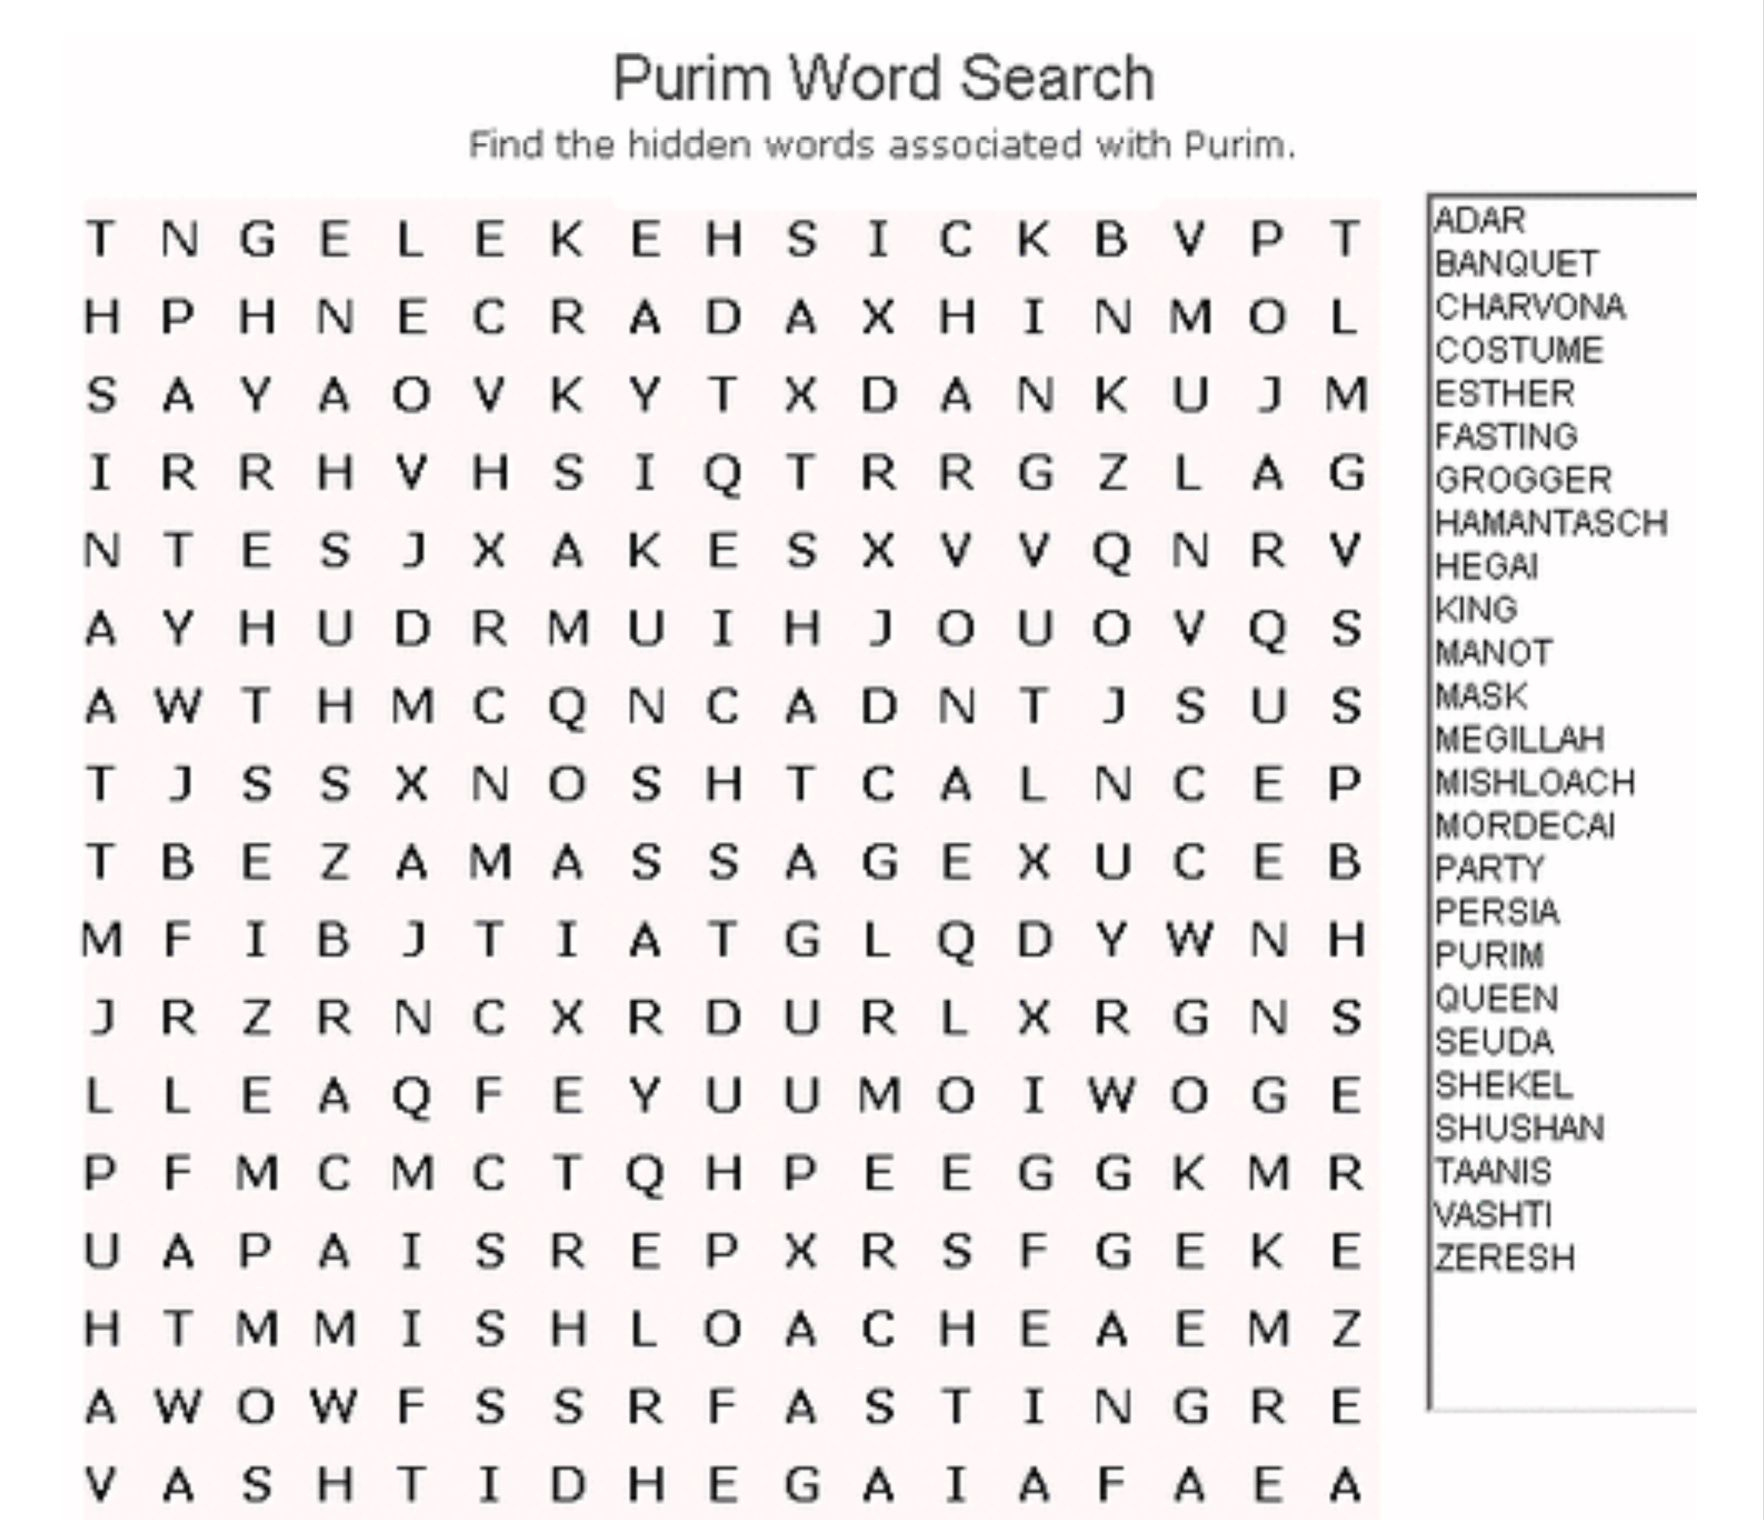 Purim Word Search | Kitah Dalet | Free Word Search Puzzles, Word - Free Printable General Knowledge Crossword Puzzles